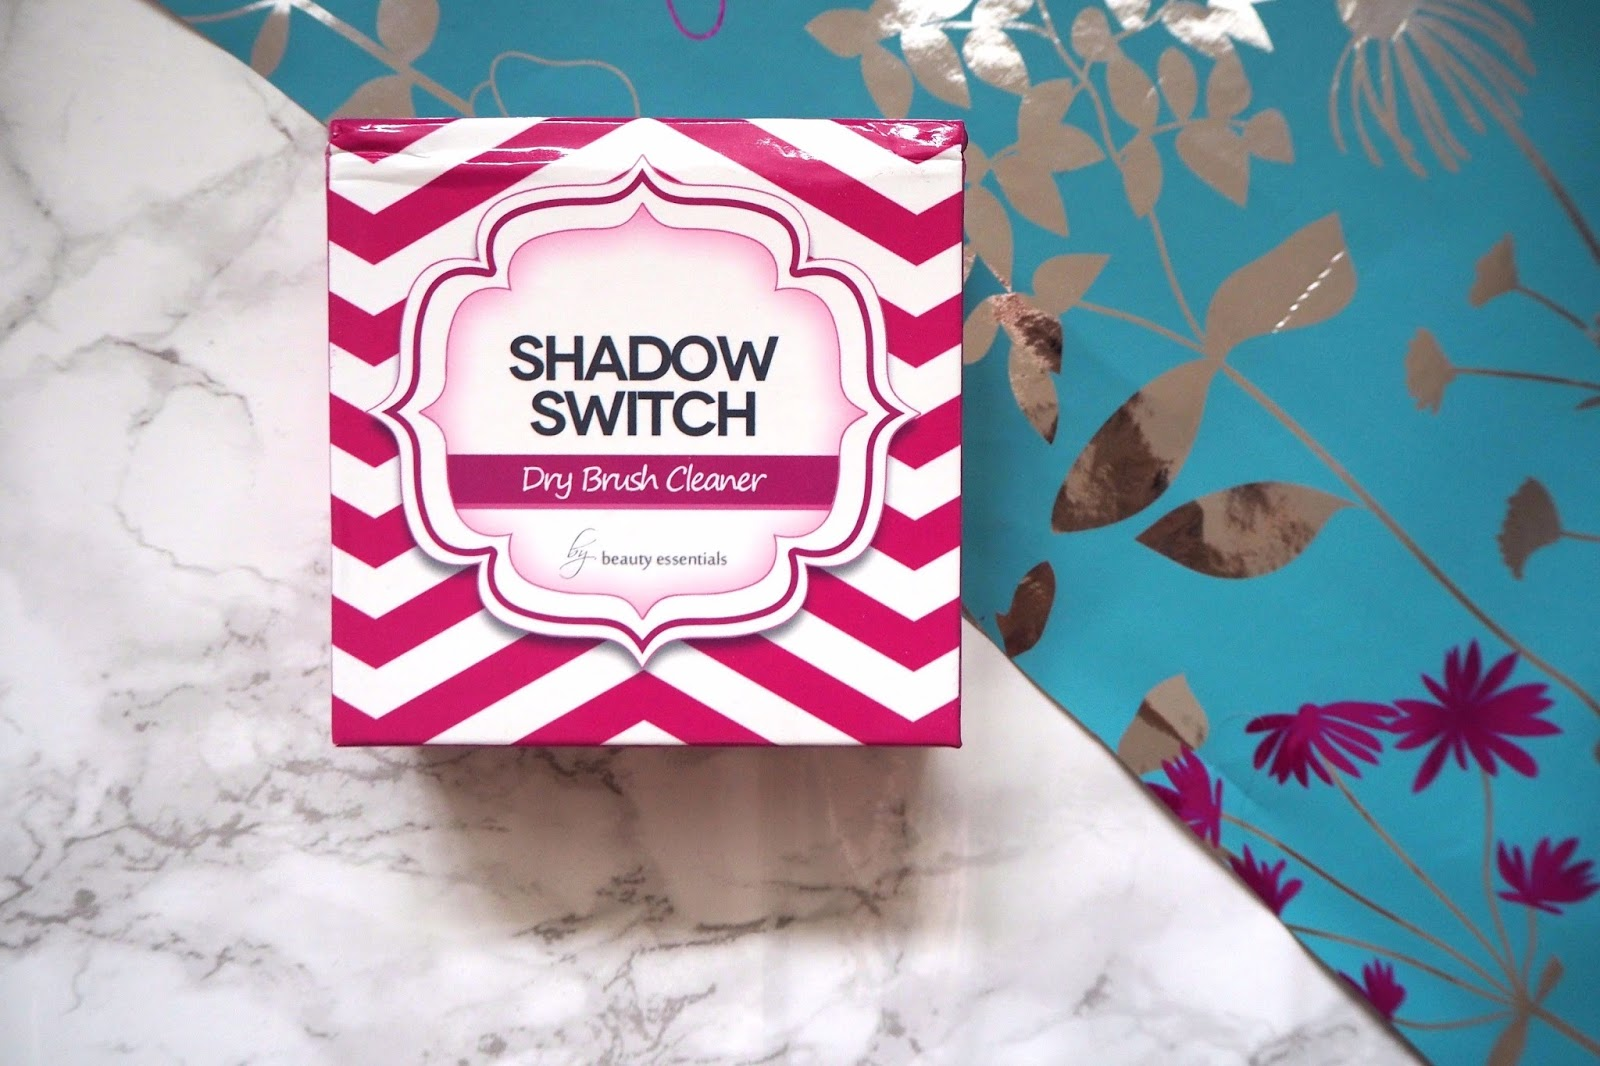 Shadow Switch packaging